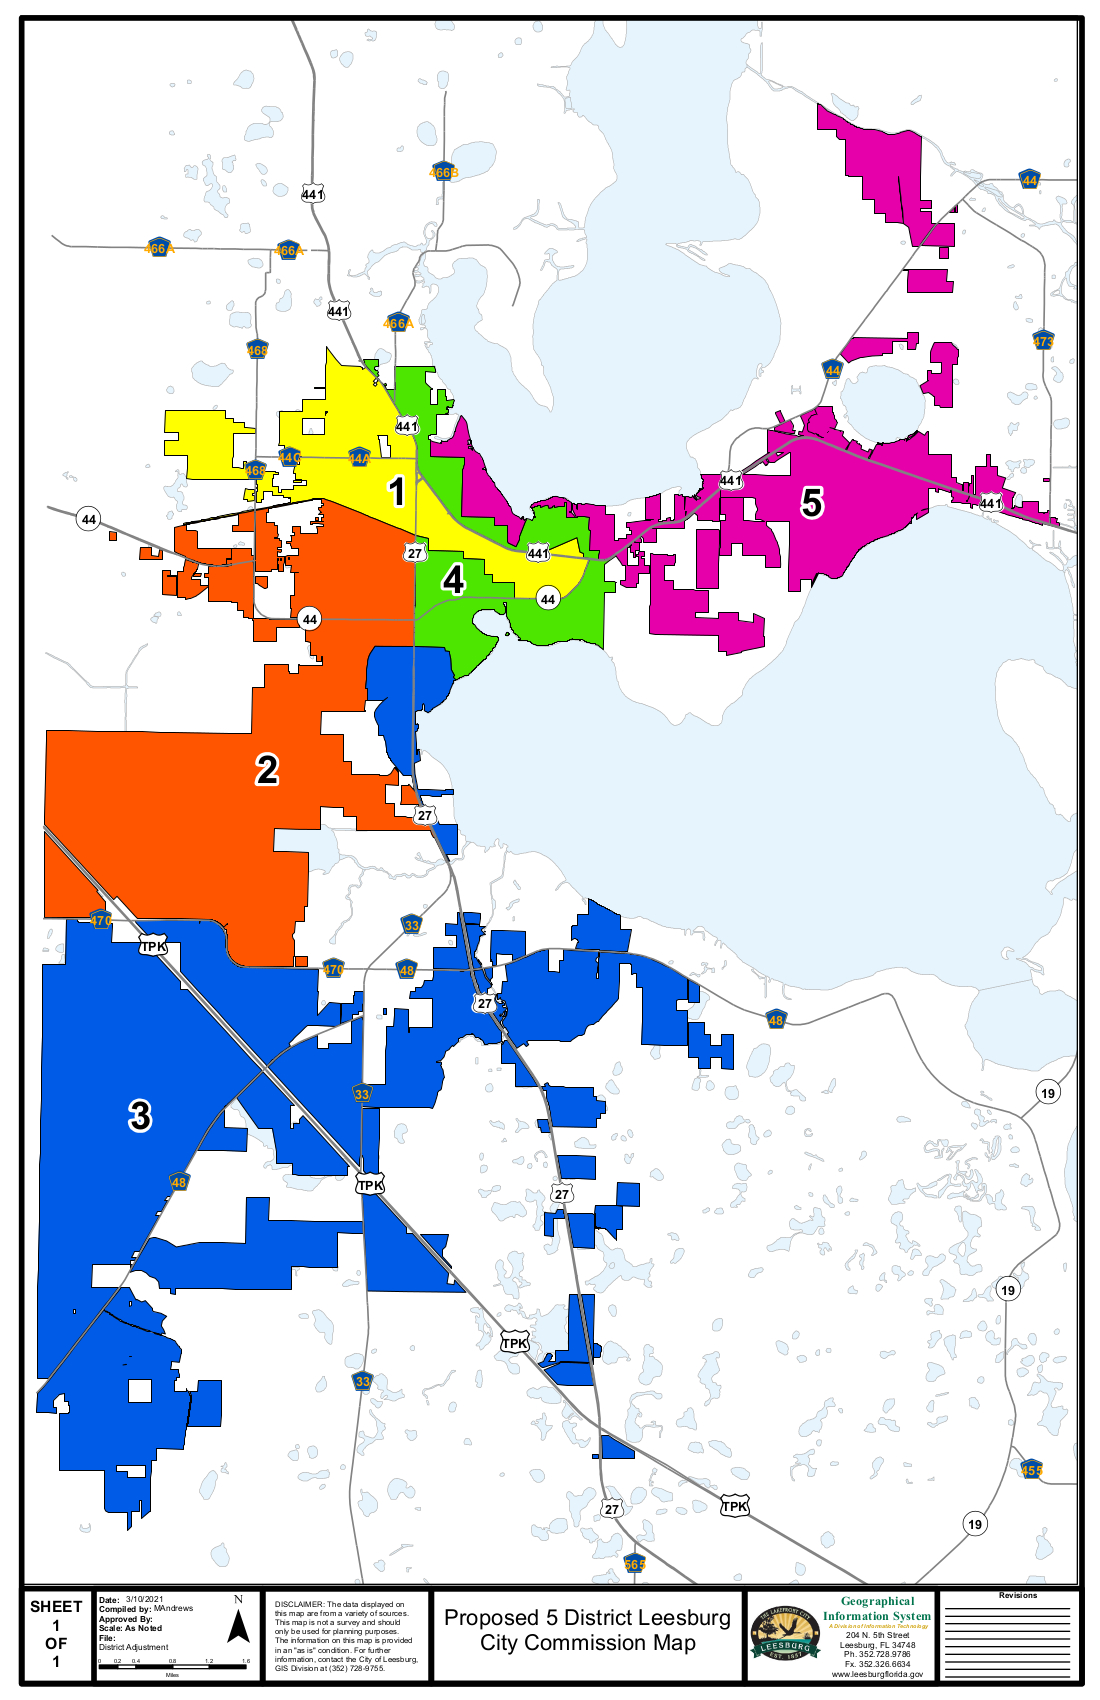 Proposed City Commission 5 Single-Member District Map showing major highways